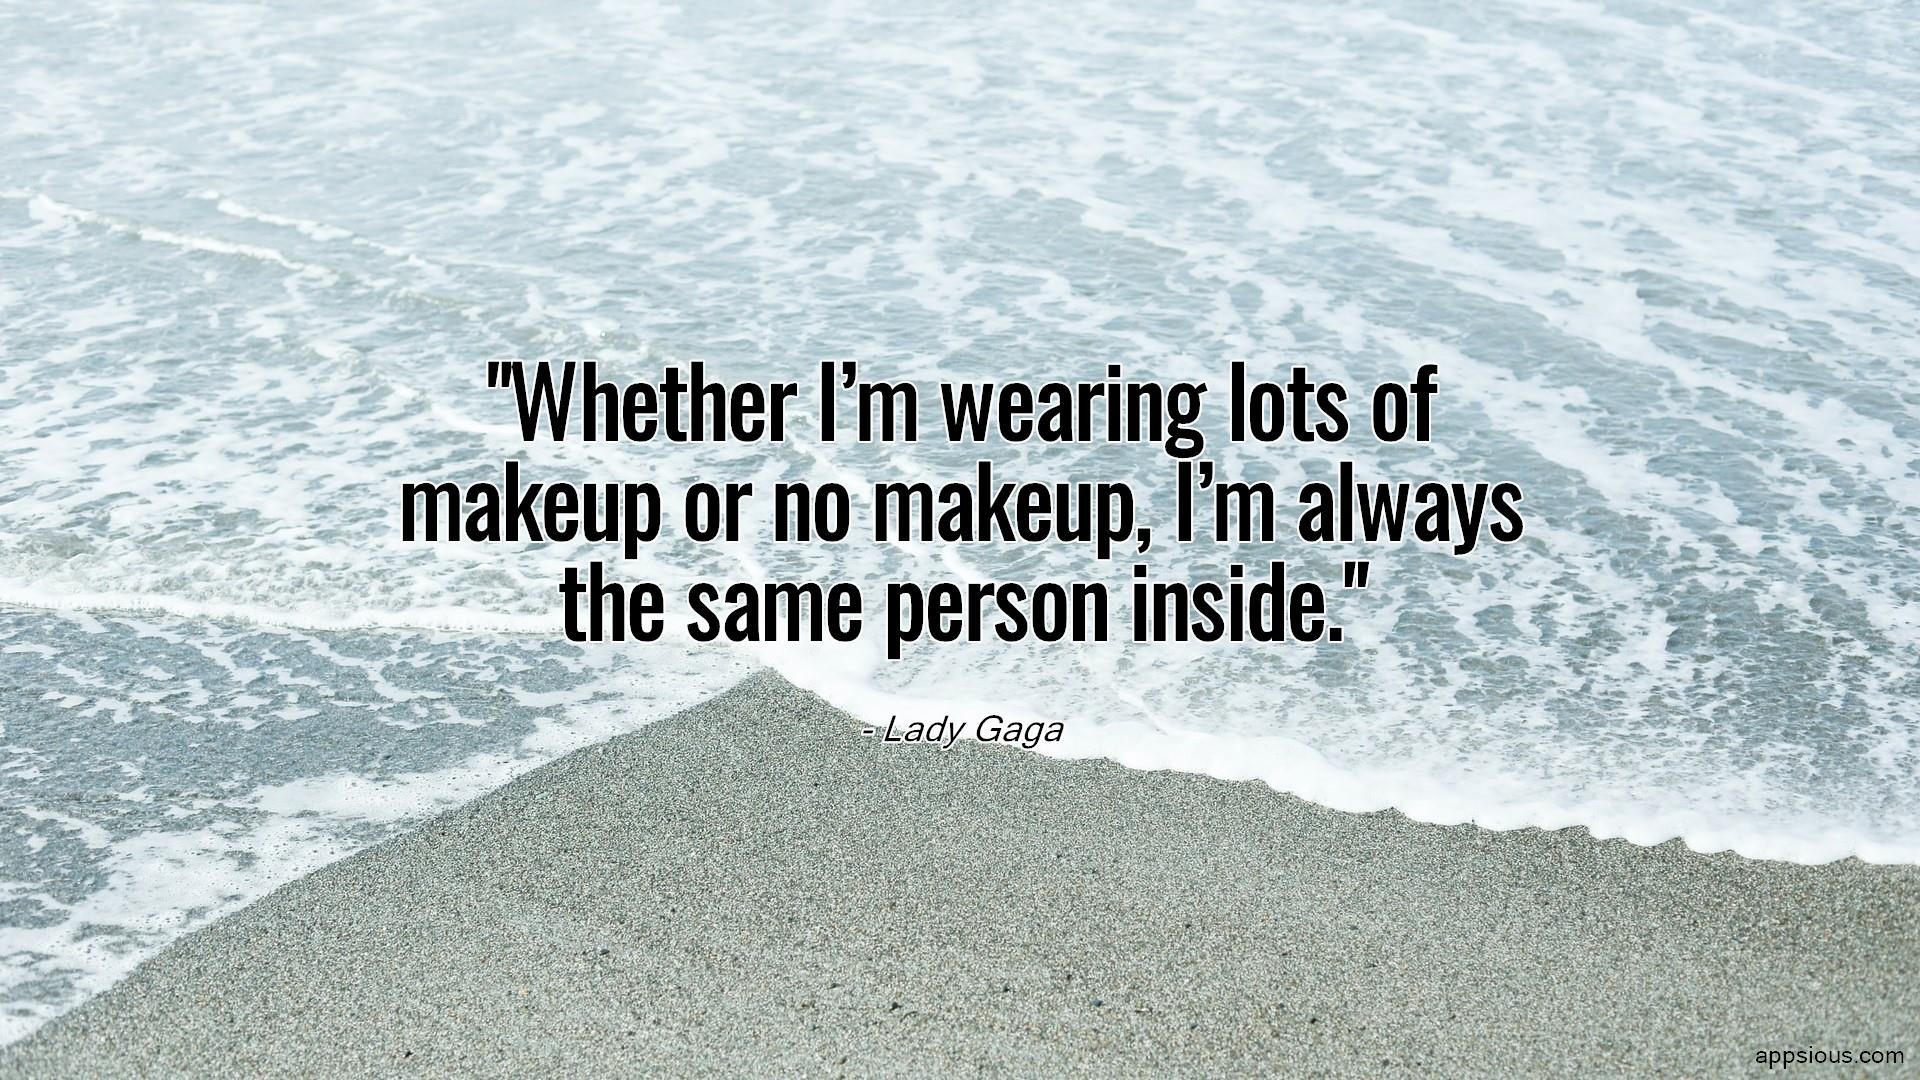 Whether I'm wearing lots of makeup or no makeup, I'm always the same person inside.